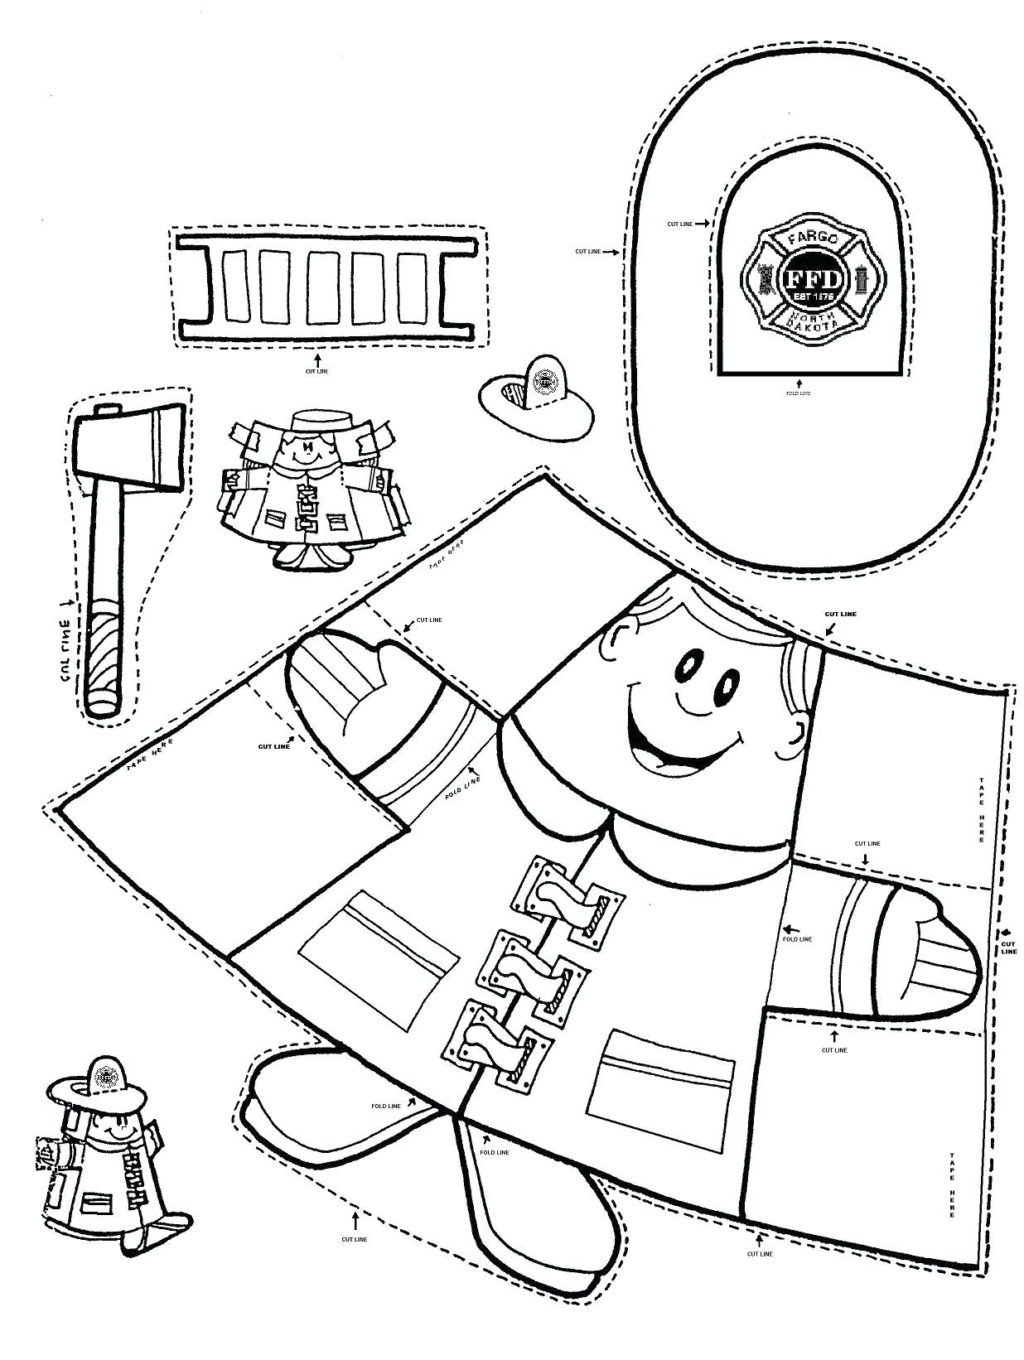 coloring pages fire safety coloringges free post office preschool printable worksheets them sketch sheets for preschoolers 1024x1360